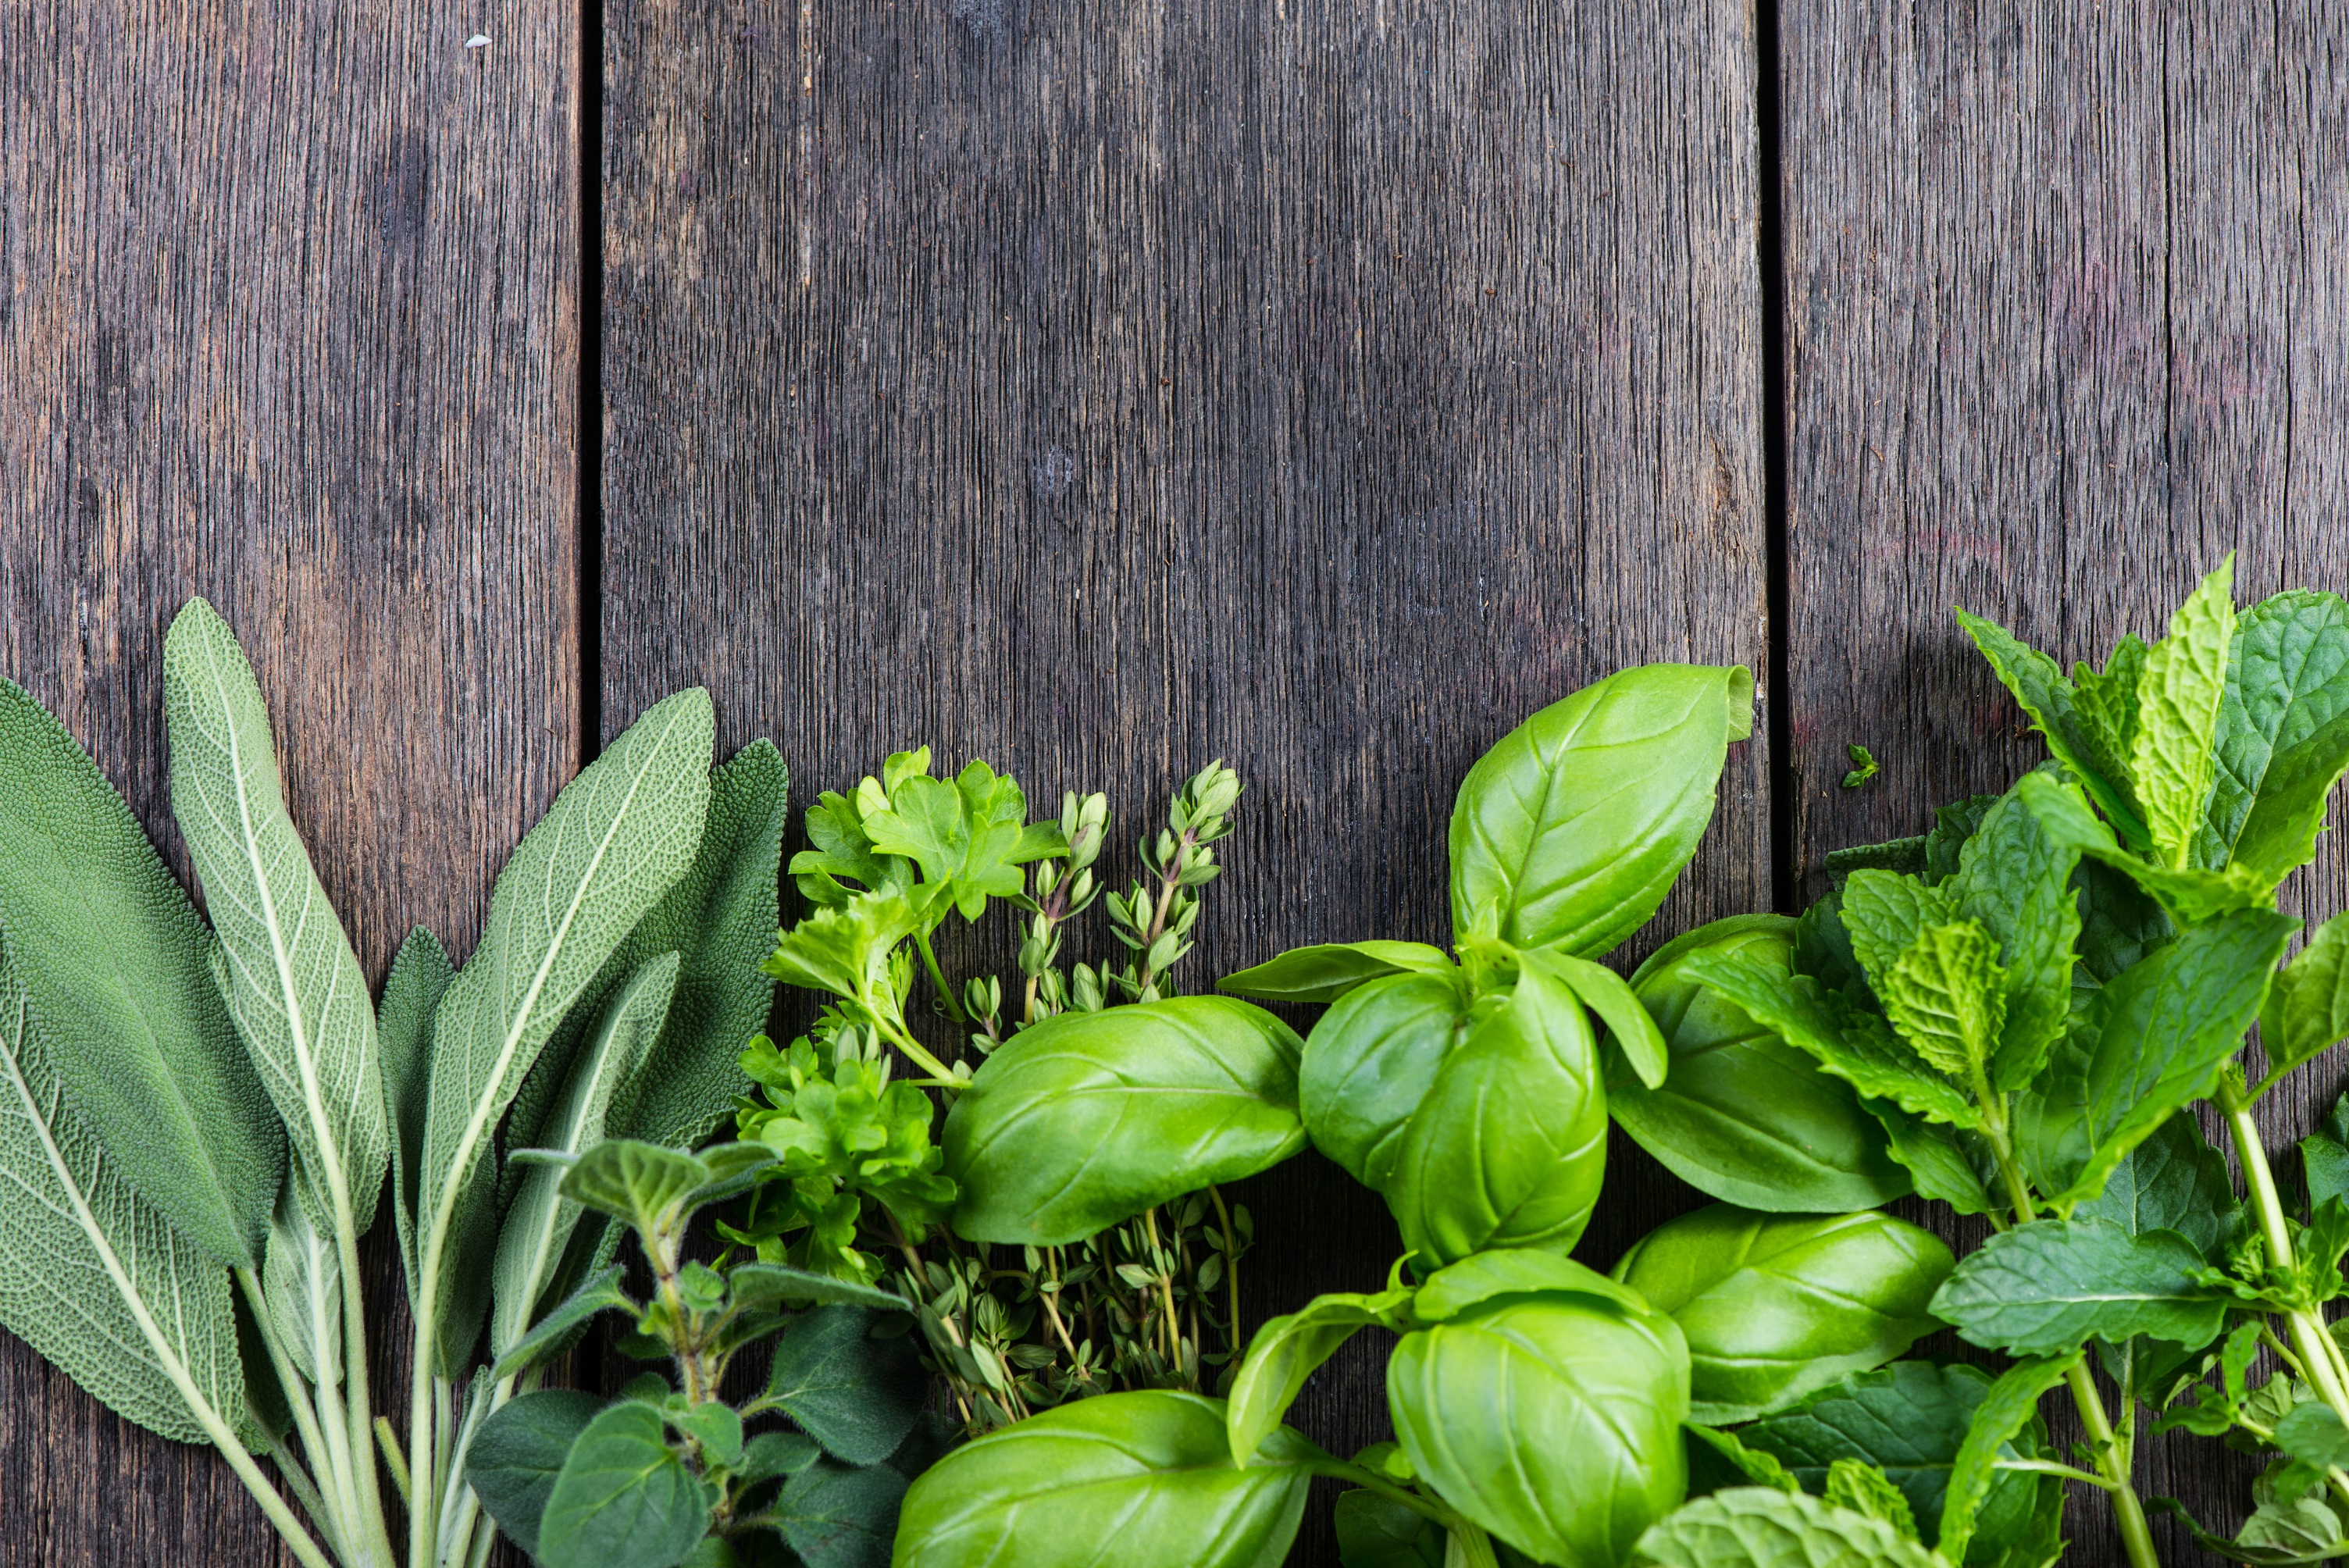 The Best Herbs For Anxiety You Should Use - The Anxiety Guy